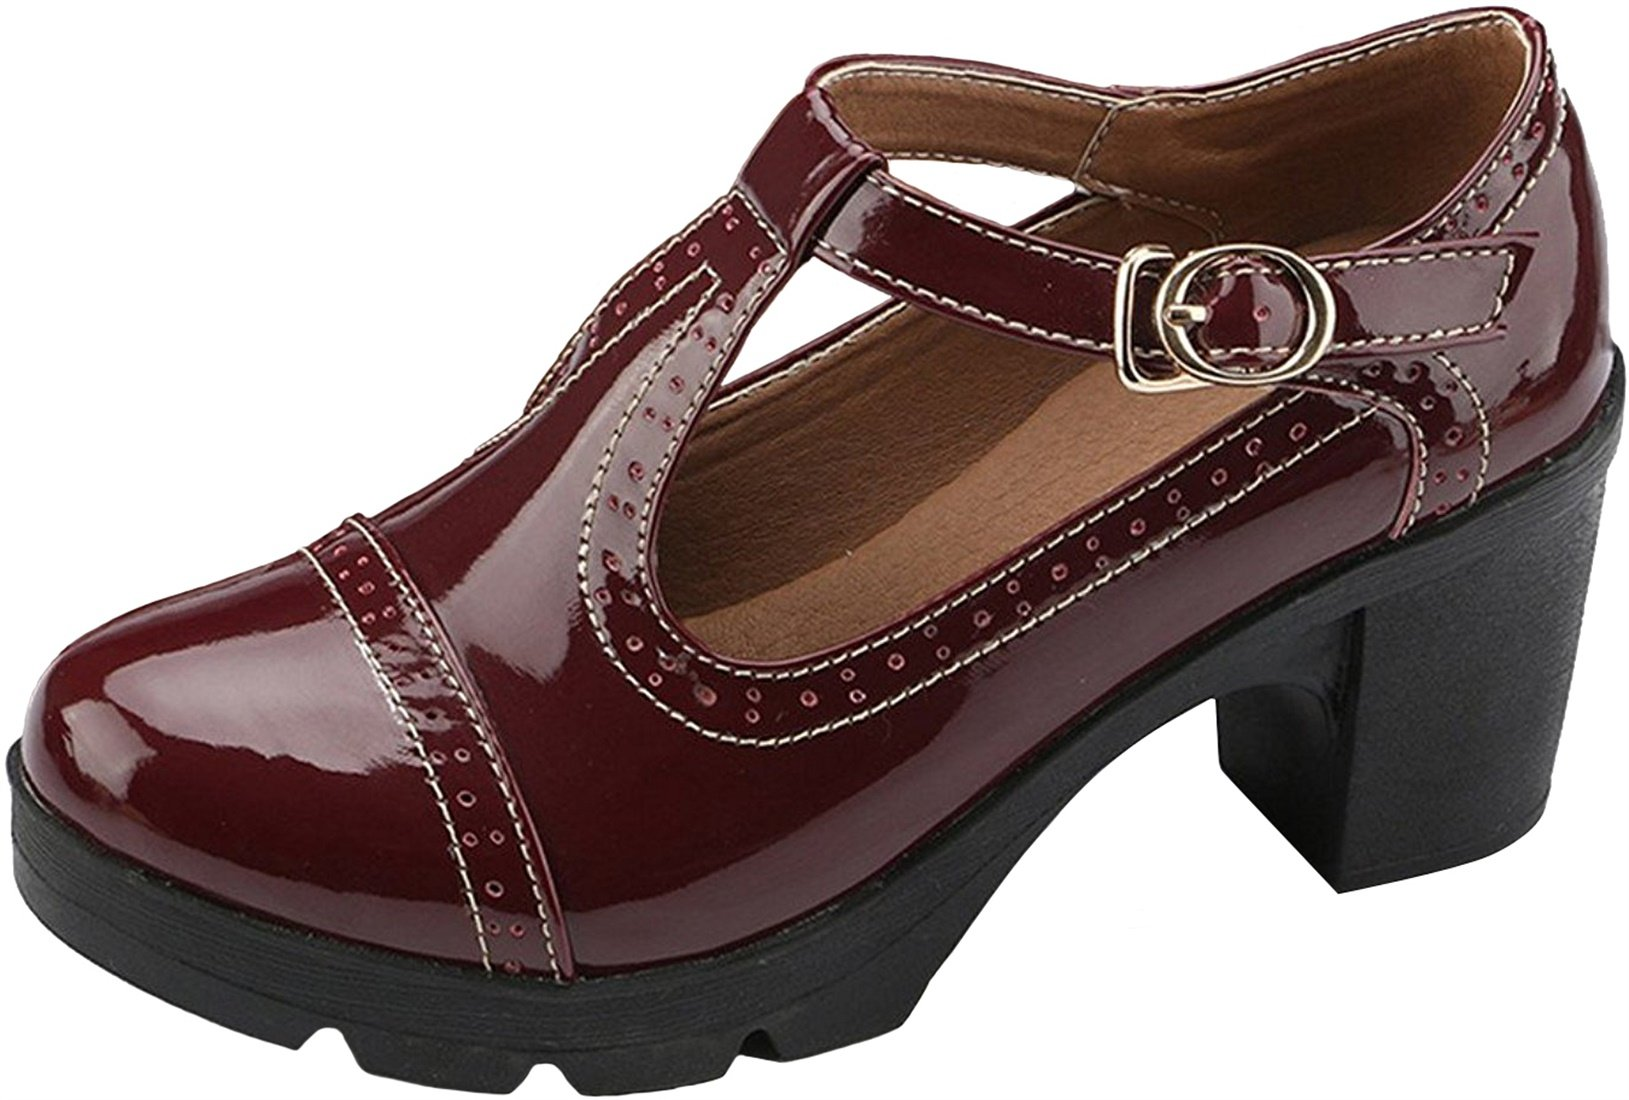 PPXID Women's British Style T-Bar Platform Heeled Oxford Shoes Work Shoes-Wine Red 7 US Size